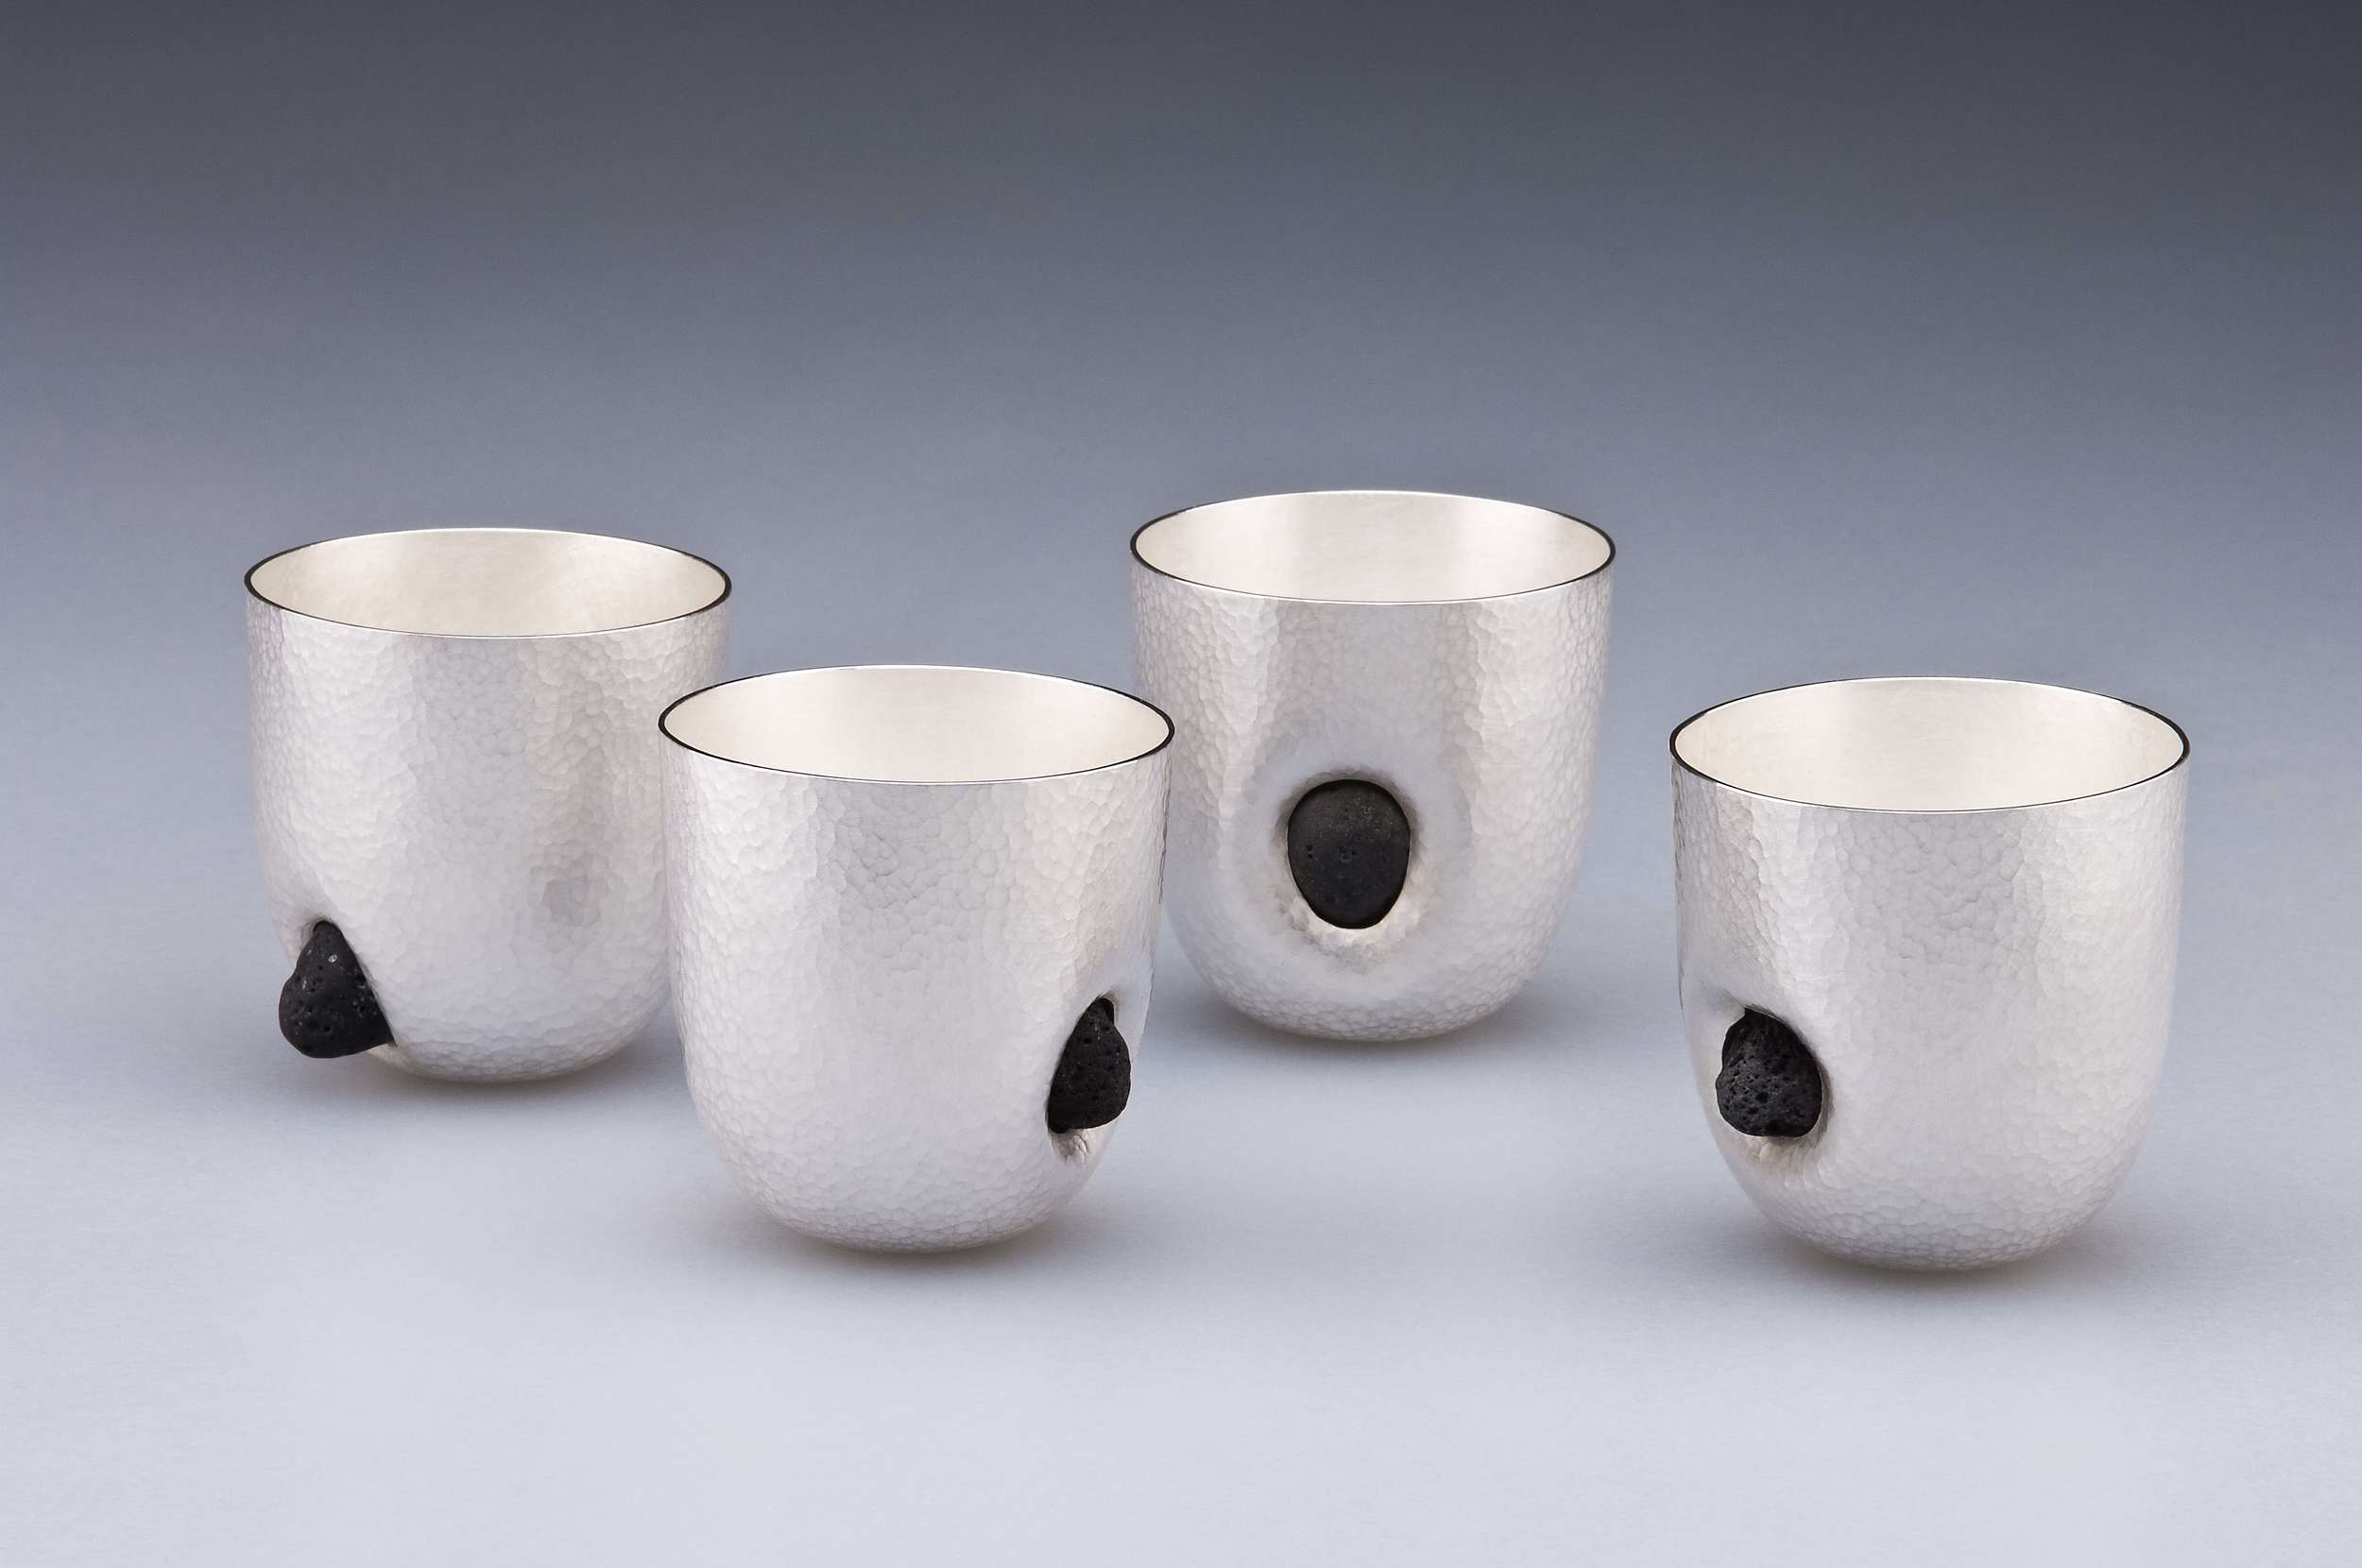 TRAP CUPS (Series 2)